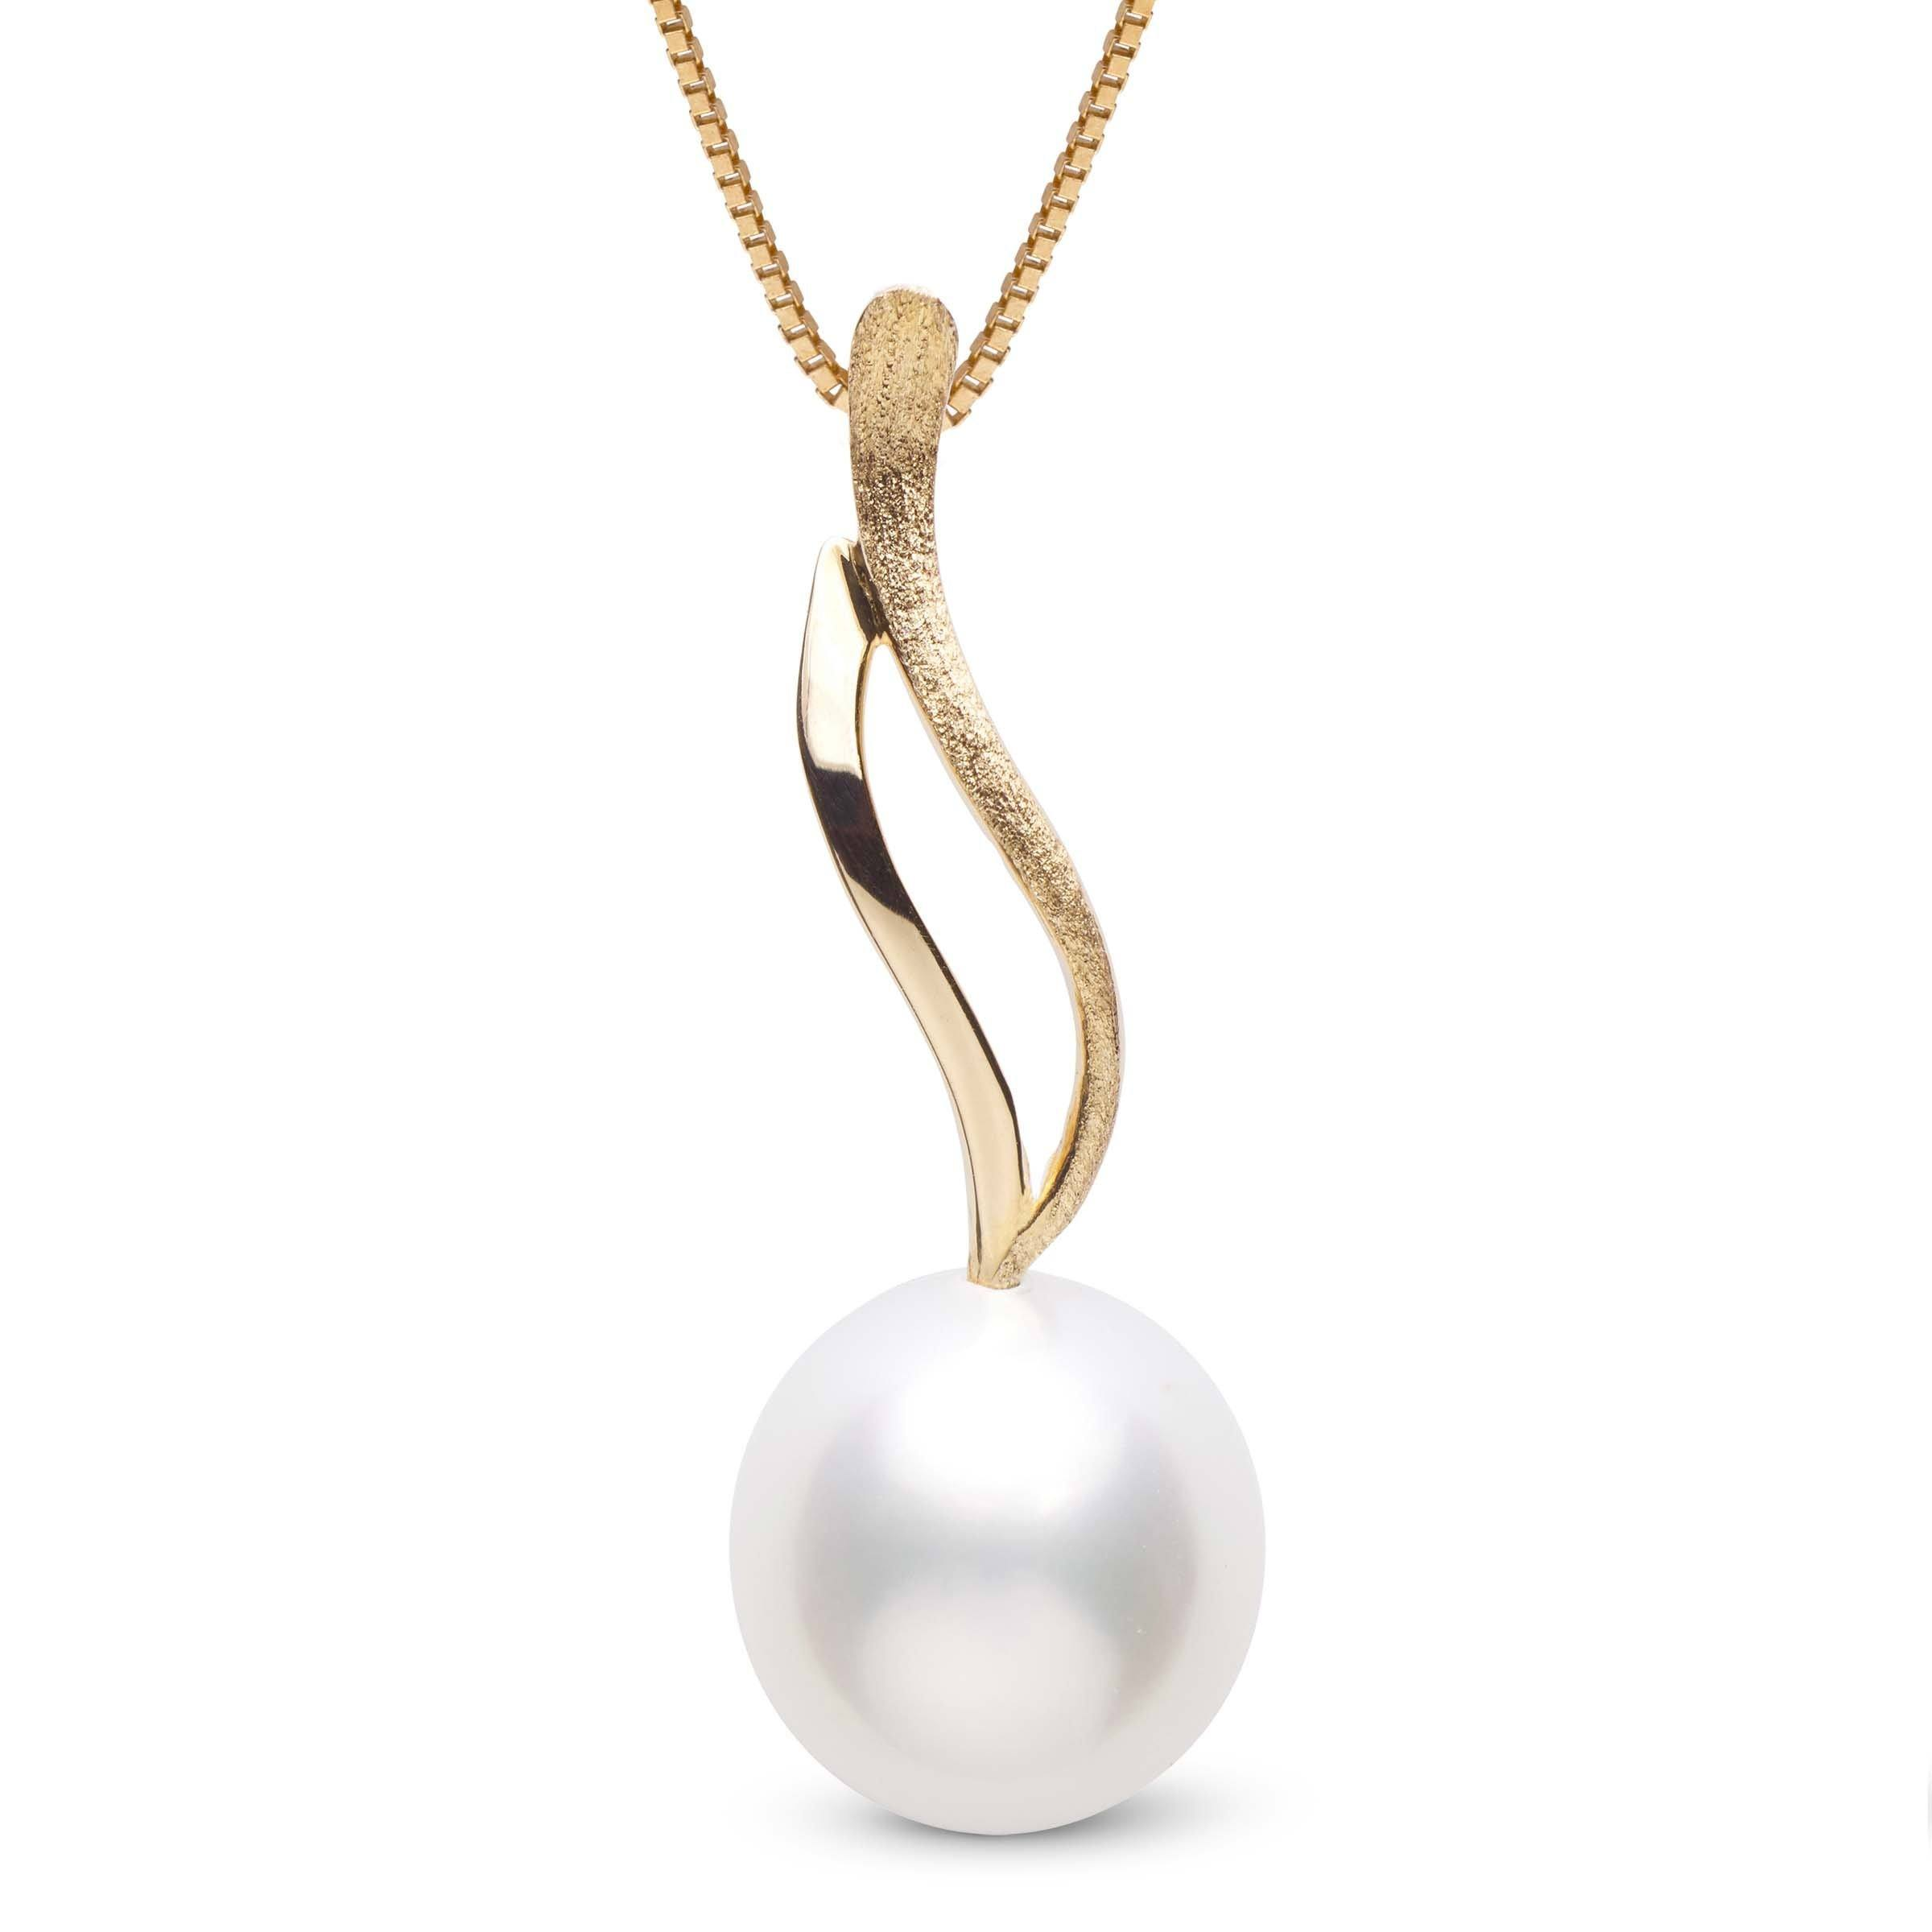 Wisp Collection 11.0-12.0 mm Drop White South Sea Pearl Pendant